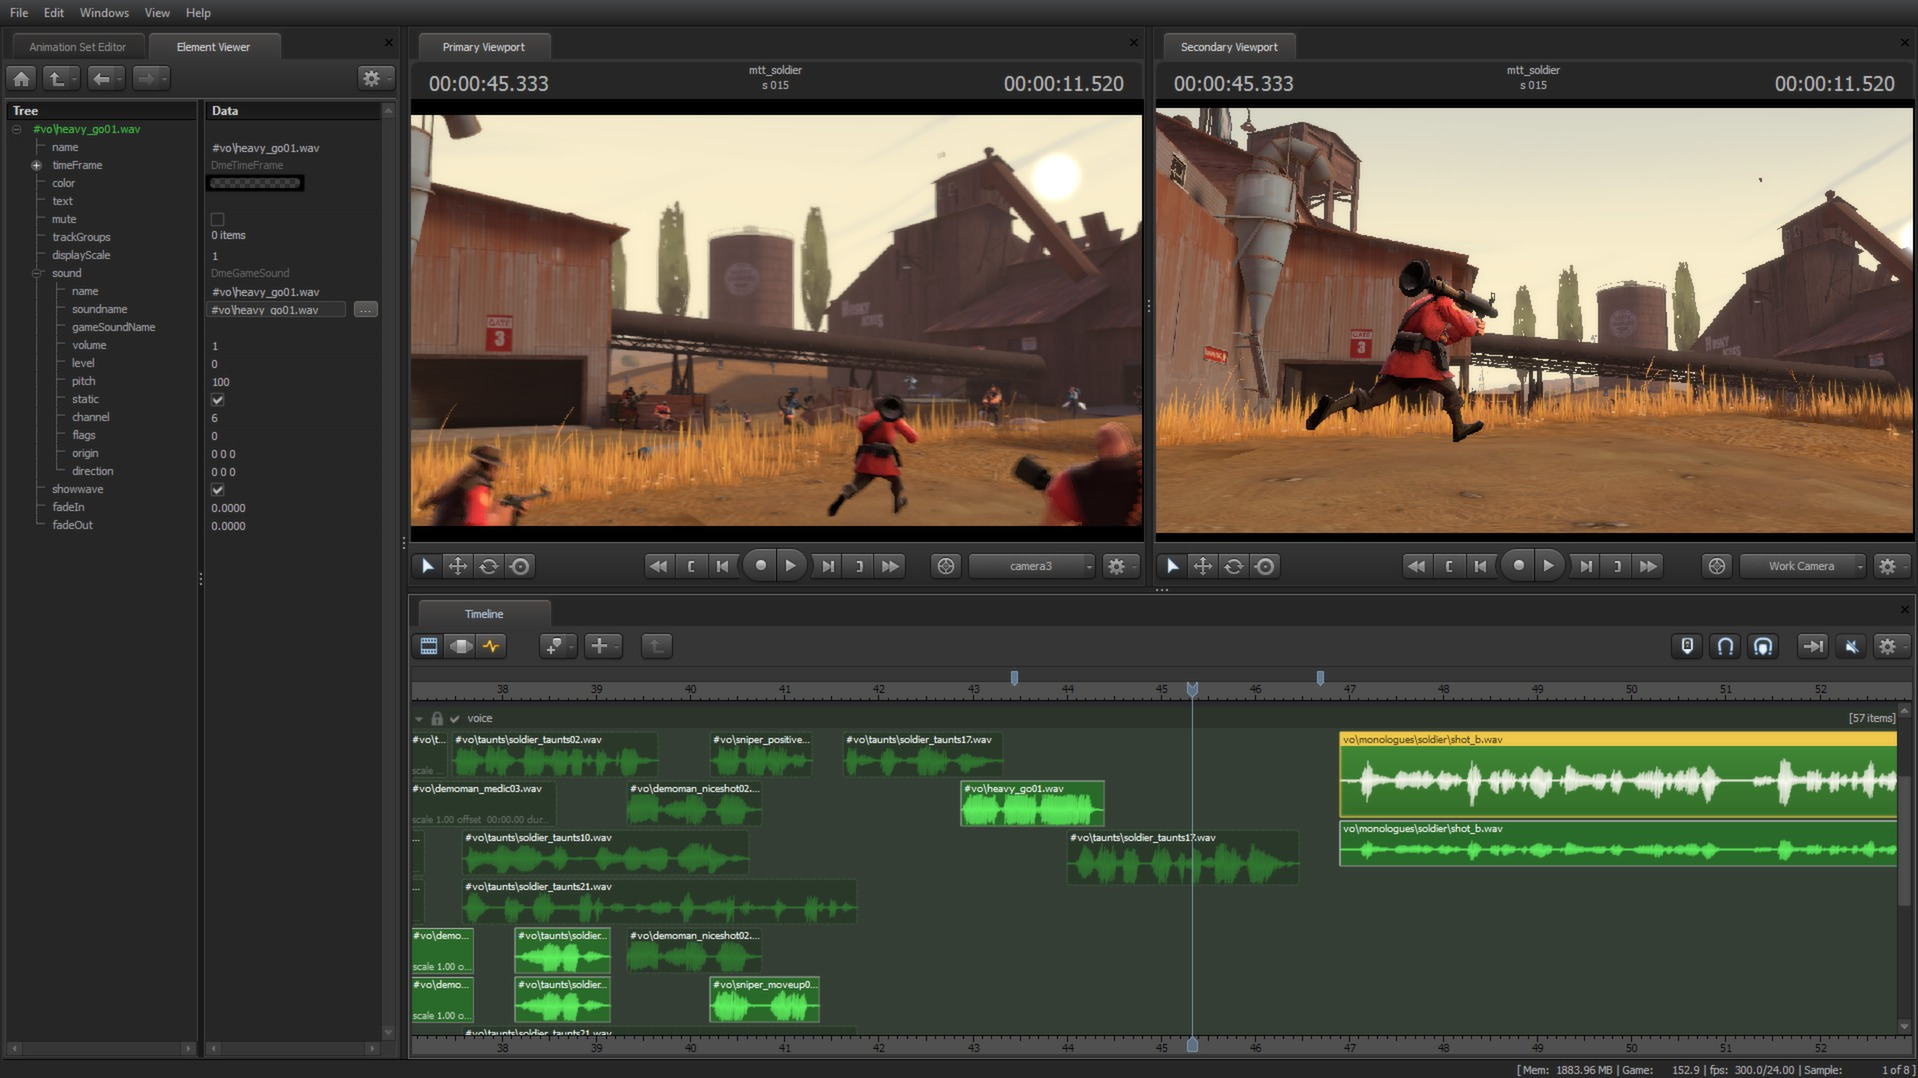 valves free moviemaking tool now available to download